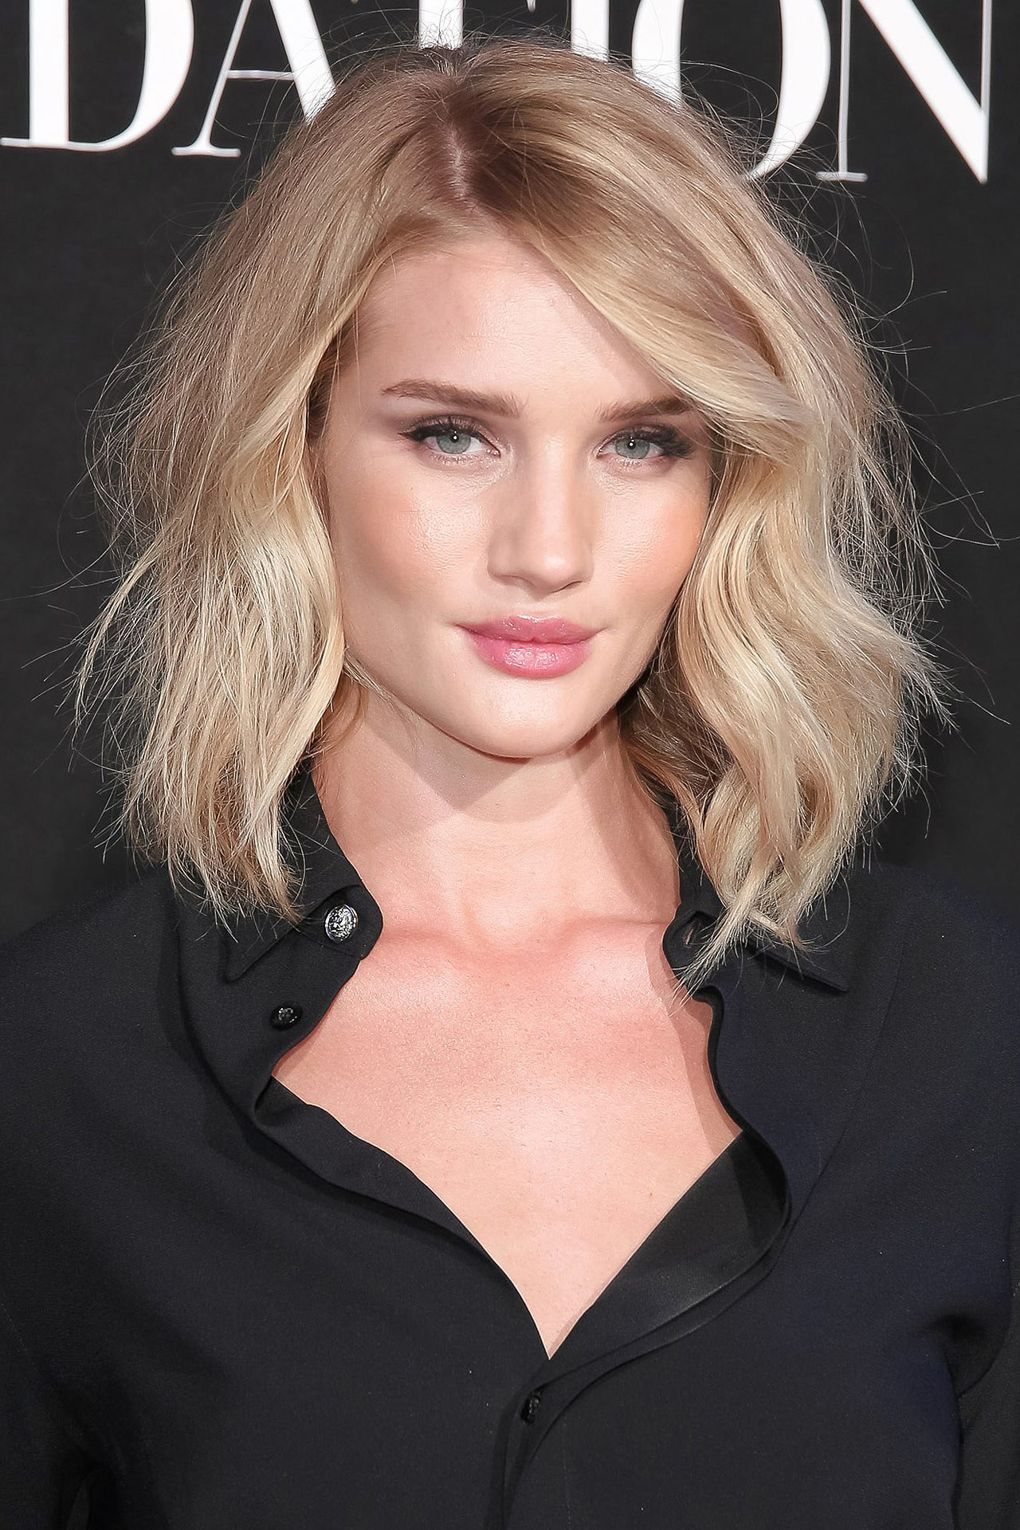 a celebrity hairdresser has revealed the one hairstyle that will